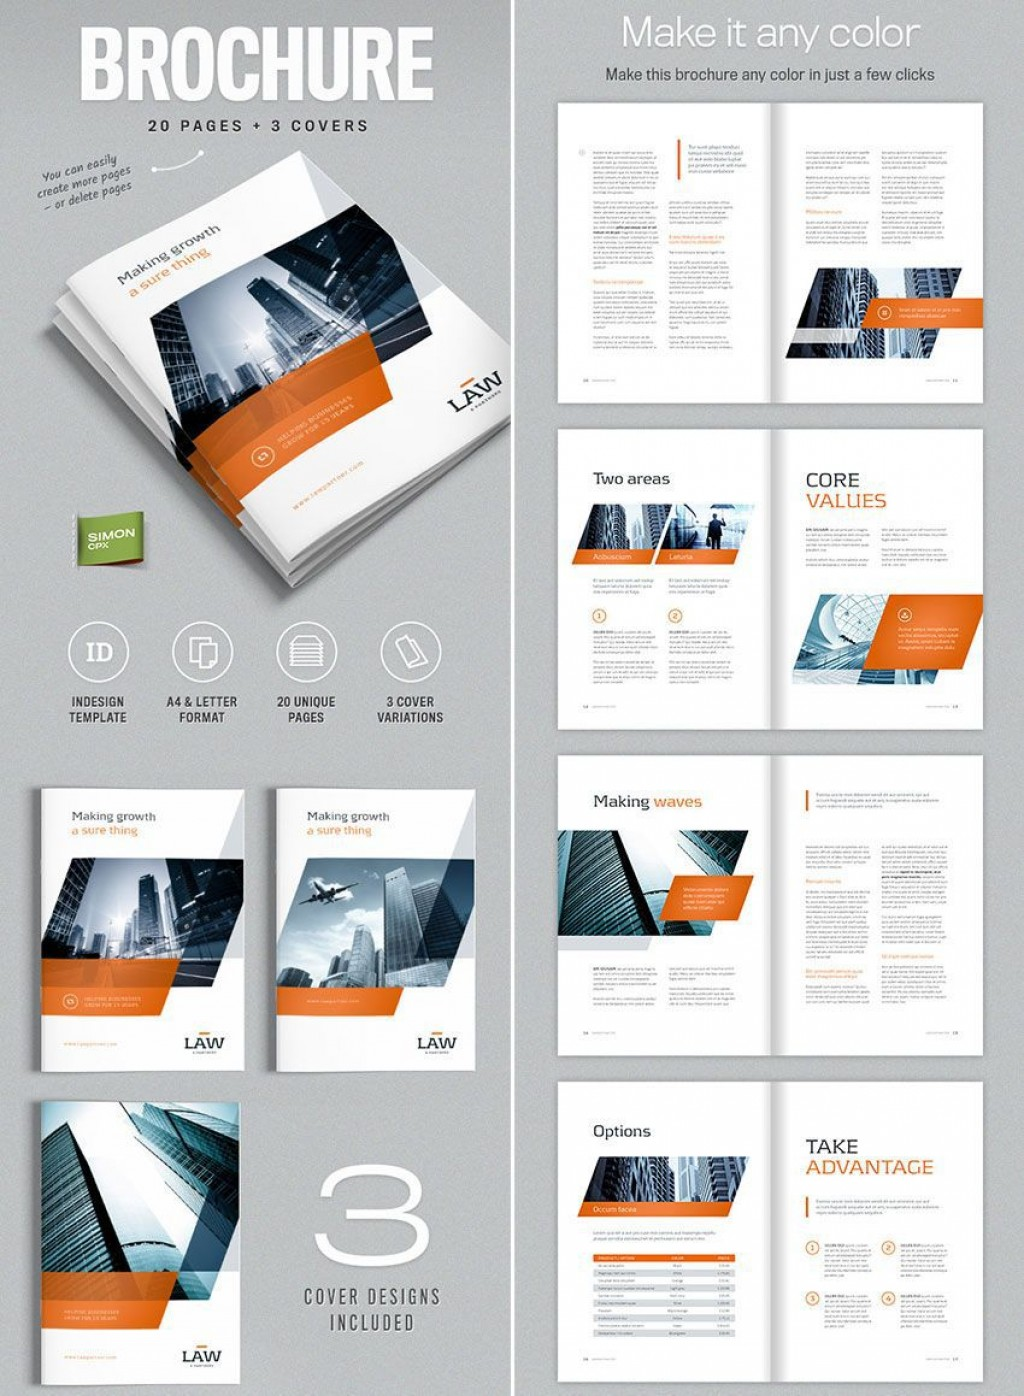 003 Stunning Adobe Indesign Brochure Template Free Download Example Large